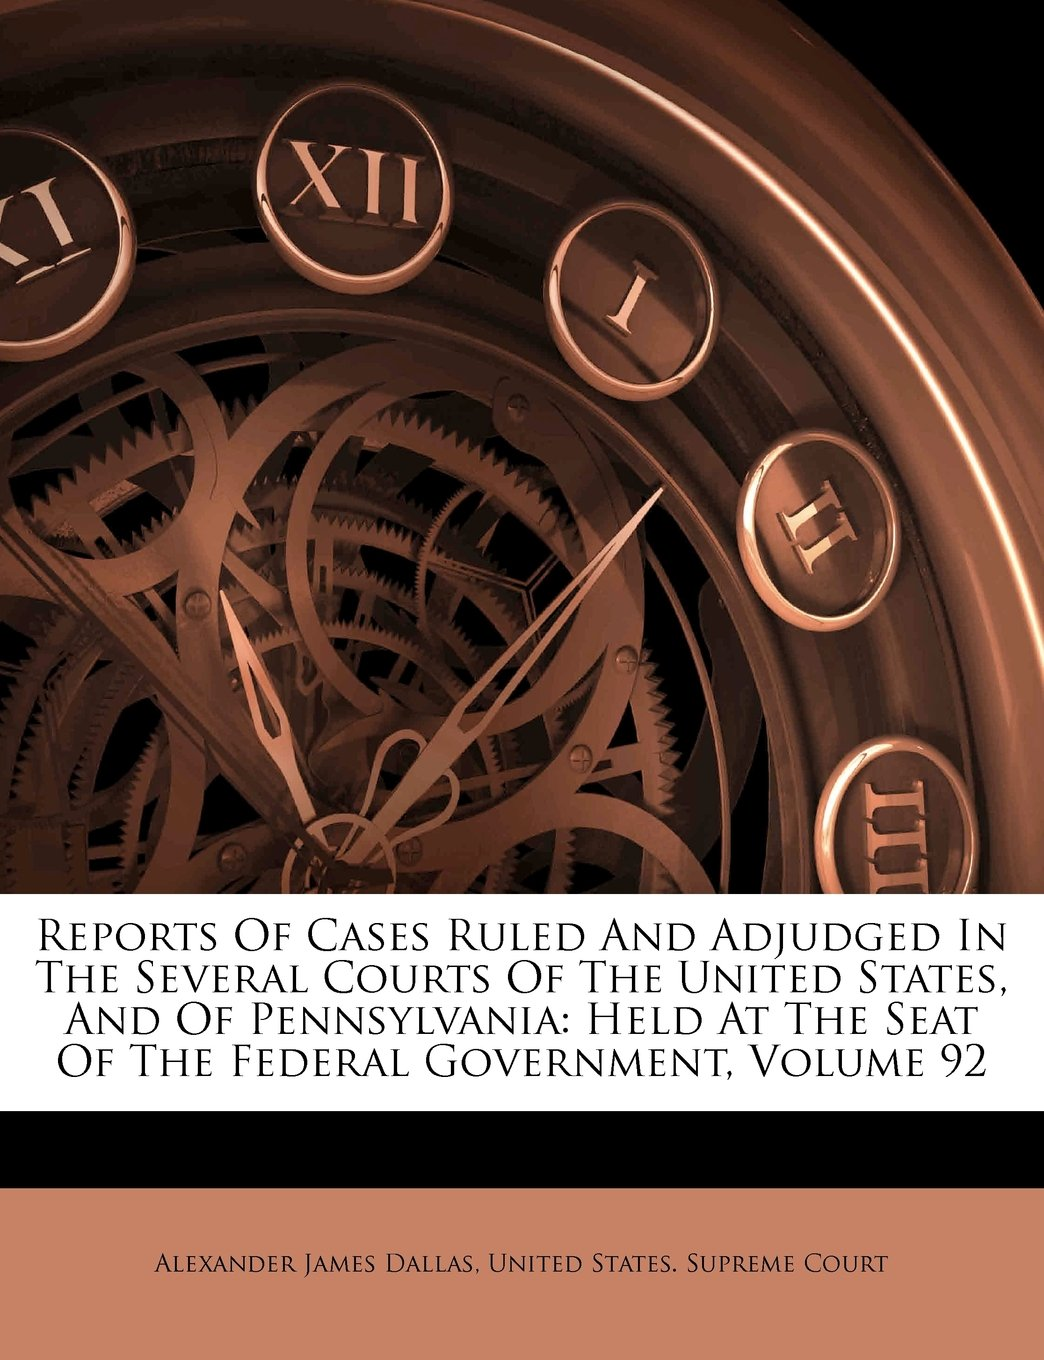 Reports Of Cases Ruled And Adjudged In The Several Courts Of The United States, And Of Pennsylvania: Held At The Seat Of The Federal Government, Volume 92 PDF